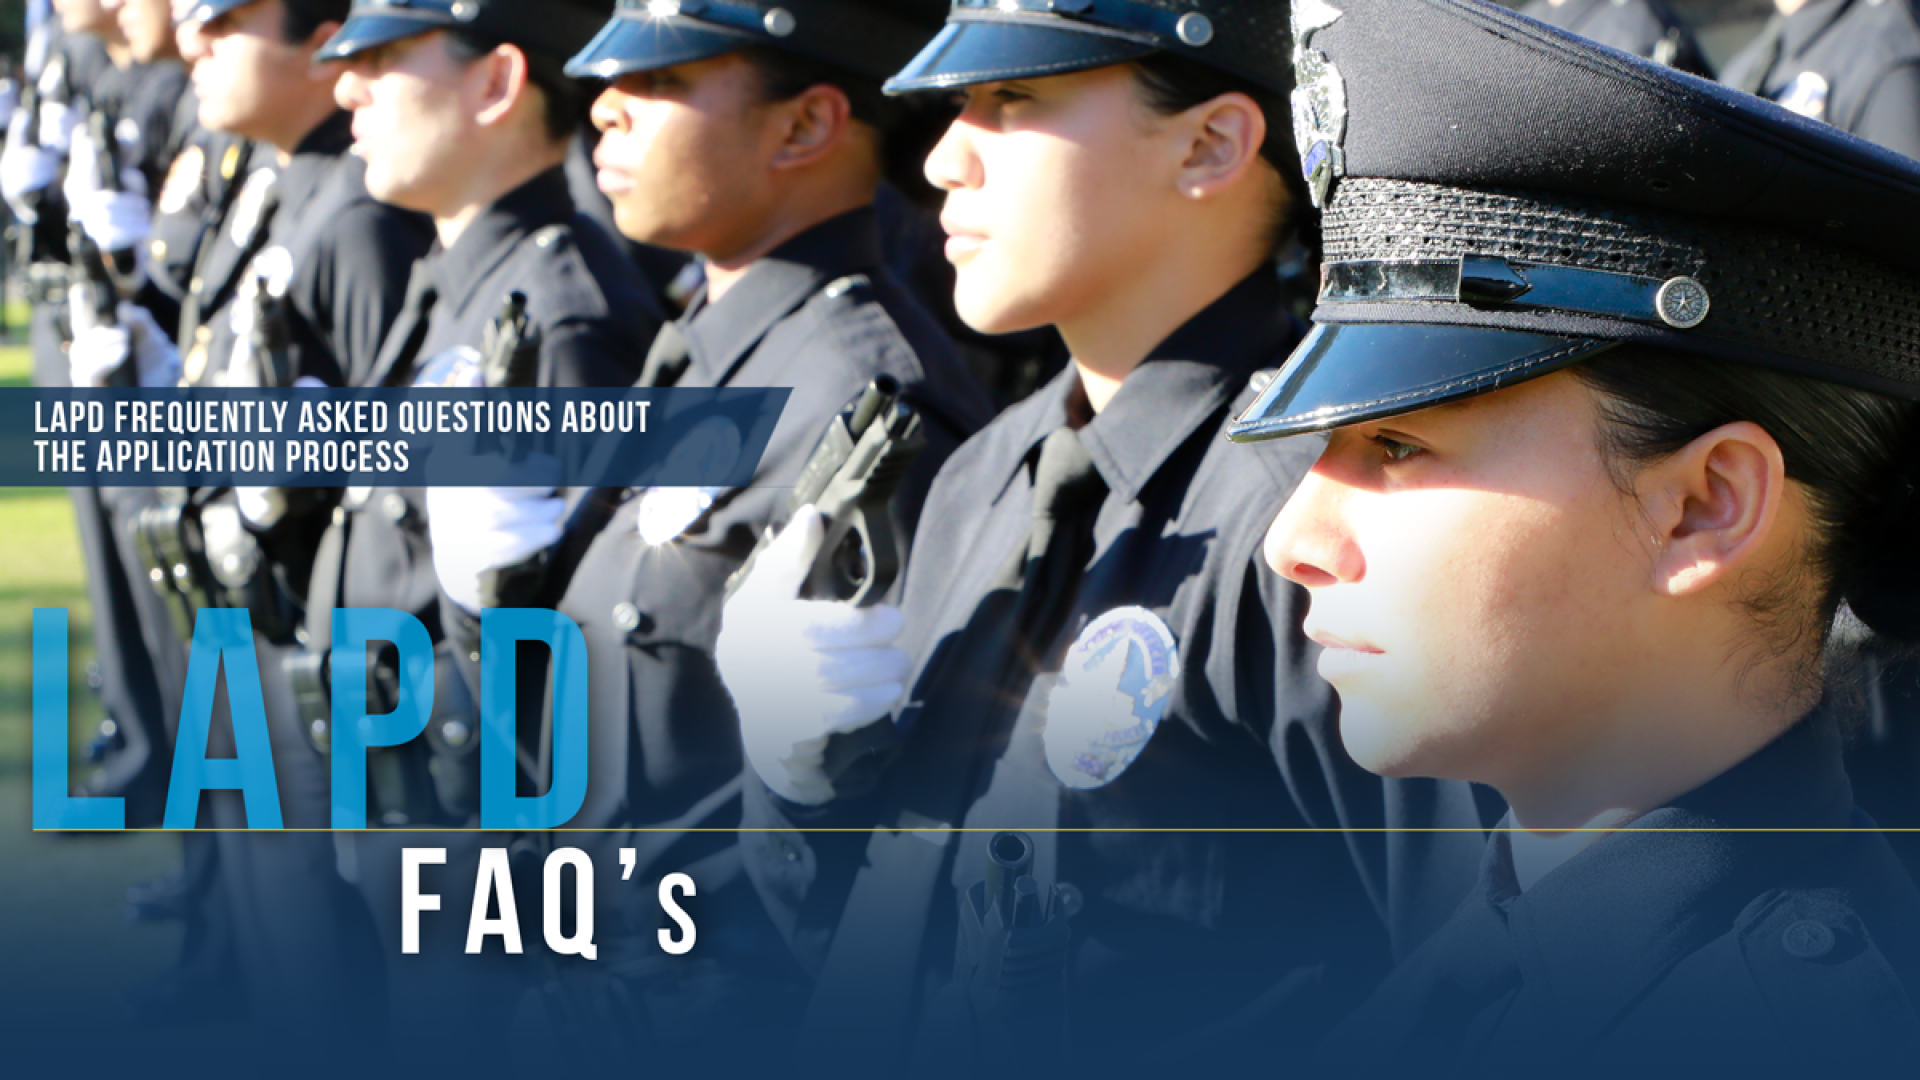 Lapd Frequently Asked Questions